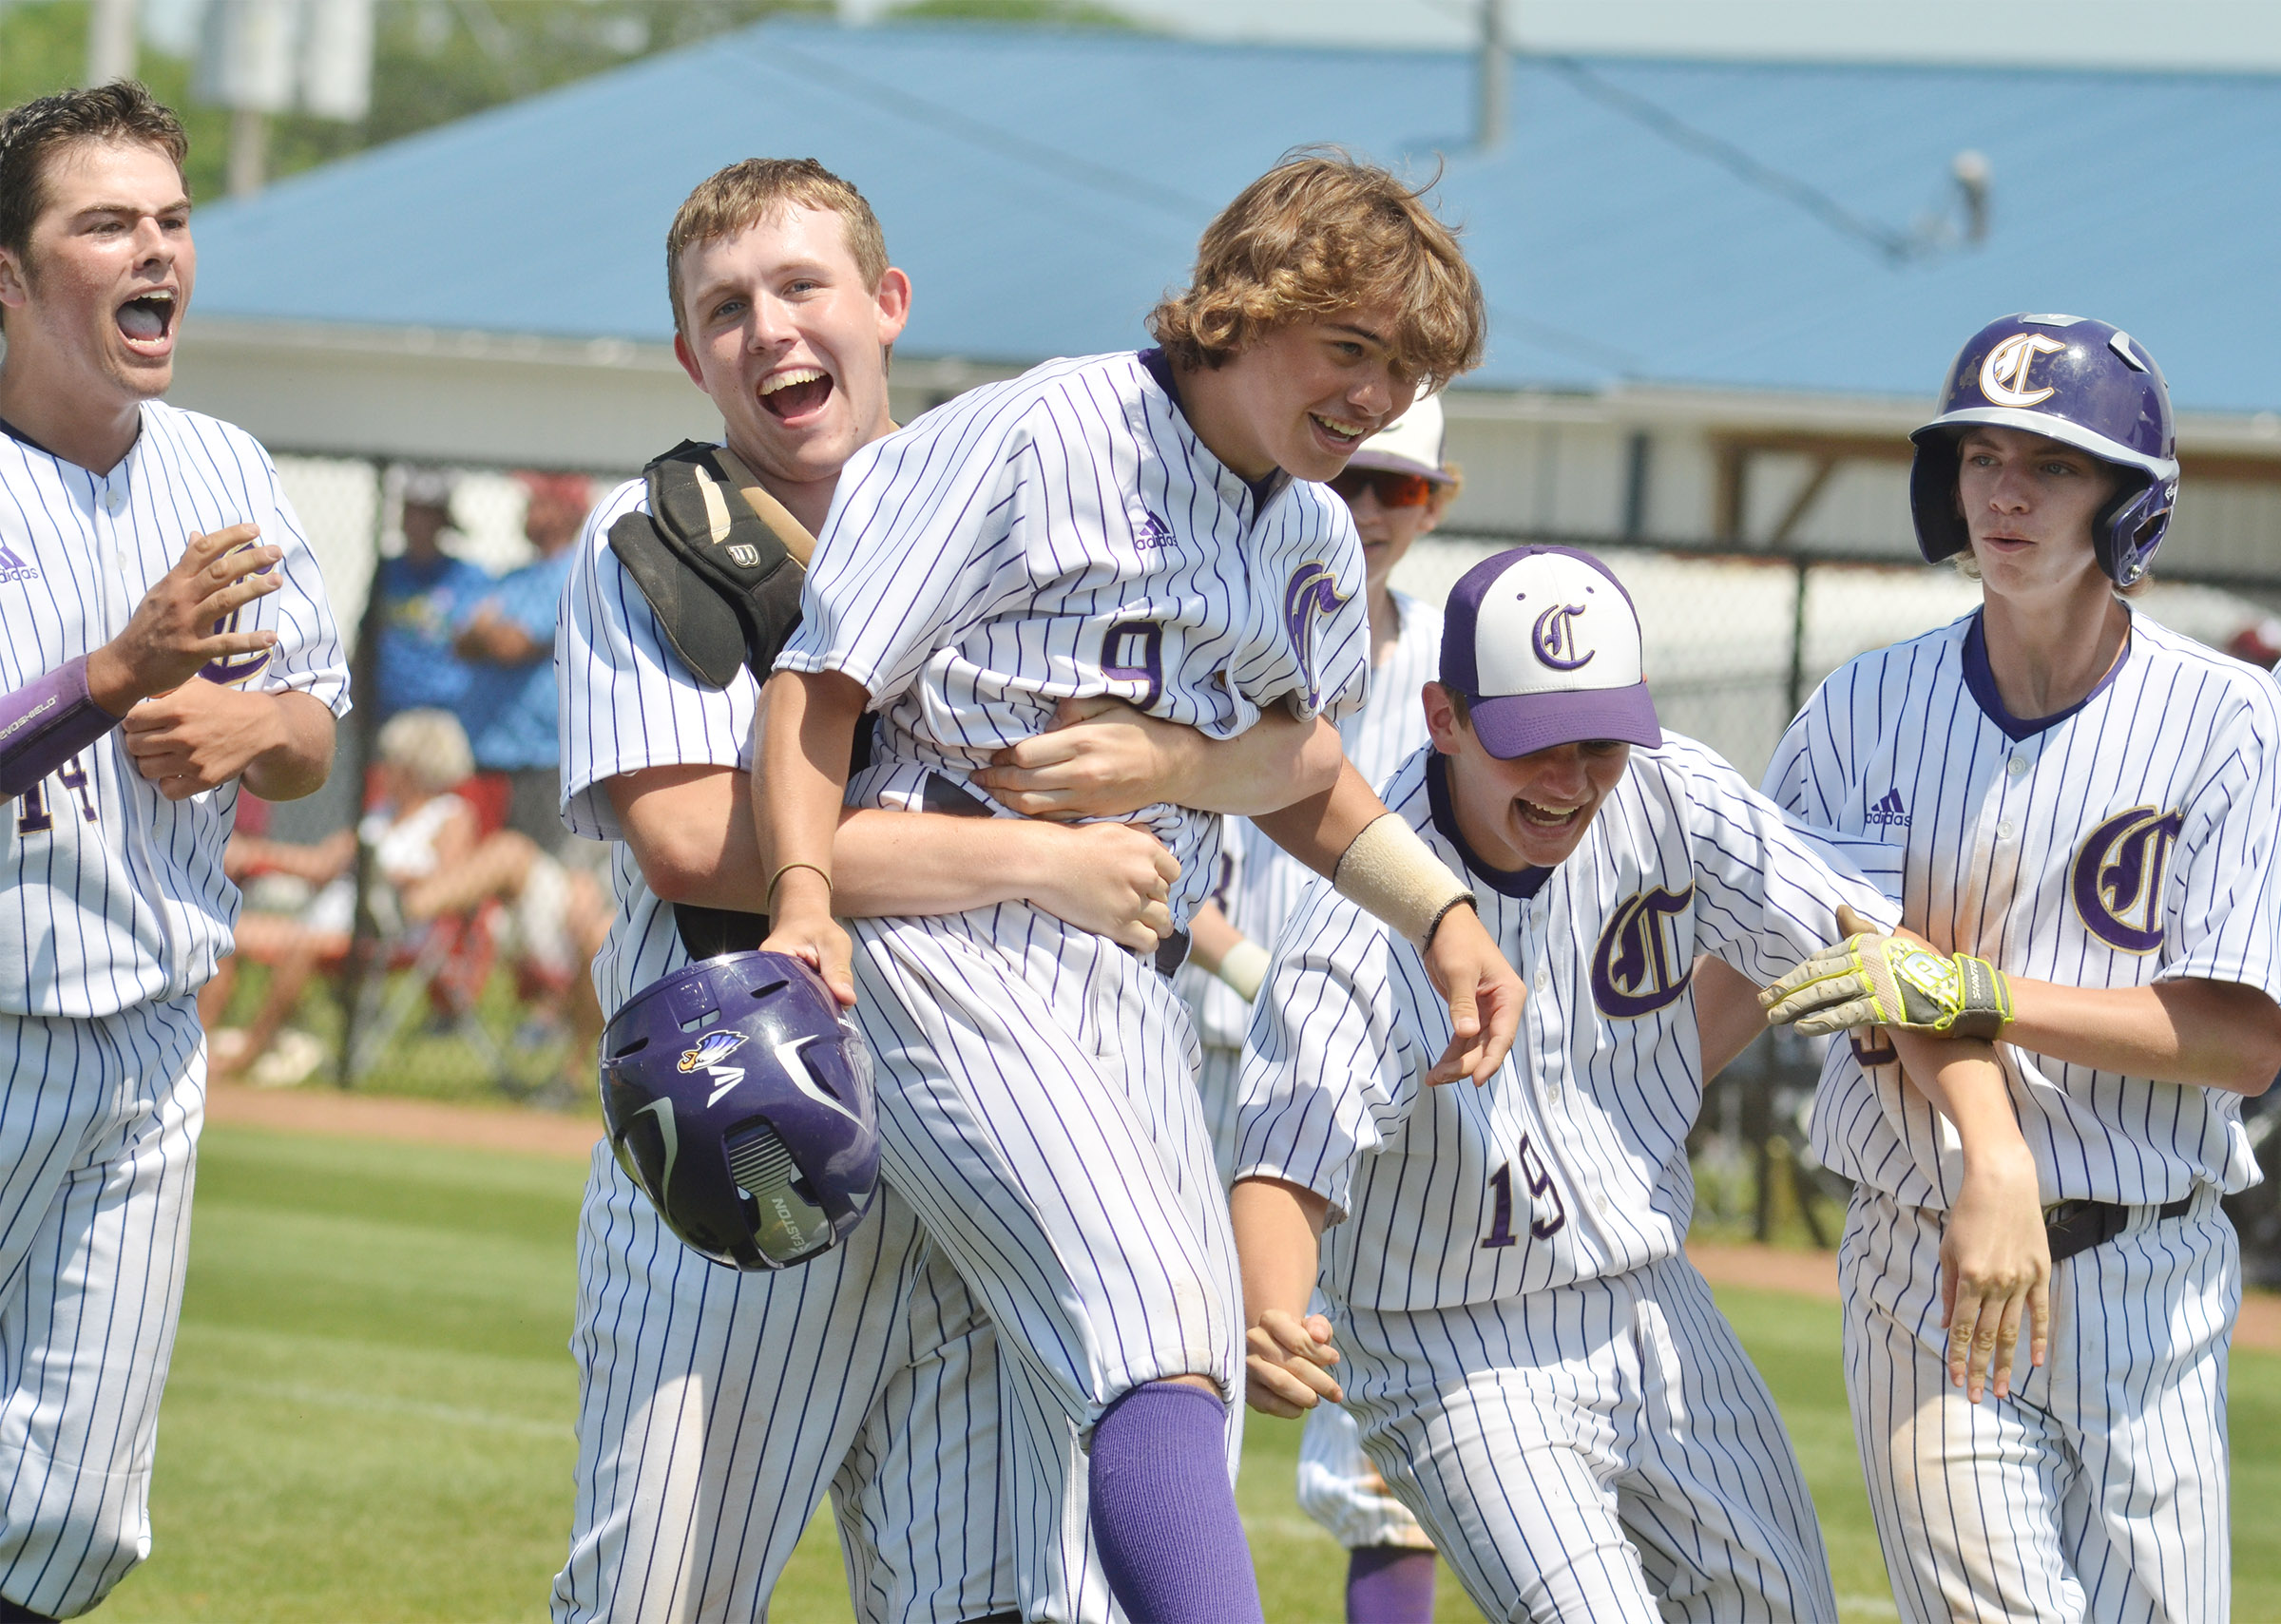 CHS senior Jared Brewster picks up Treyce Mattingly, a sophomore, after Mattingly hit a three-run homerun. Also pictured are sophomore Ryan Kearney, at left, and freshman Blake Allen, second from right, and Campbellsville Middle School eighth-grader Arren Hash.